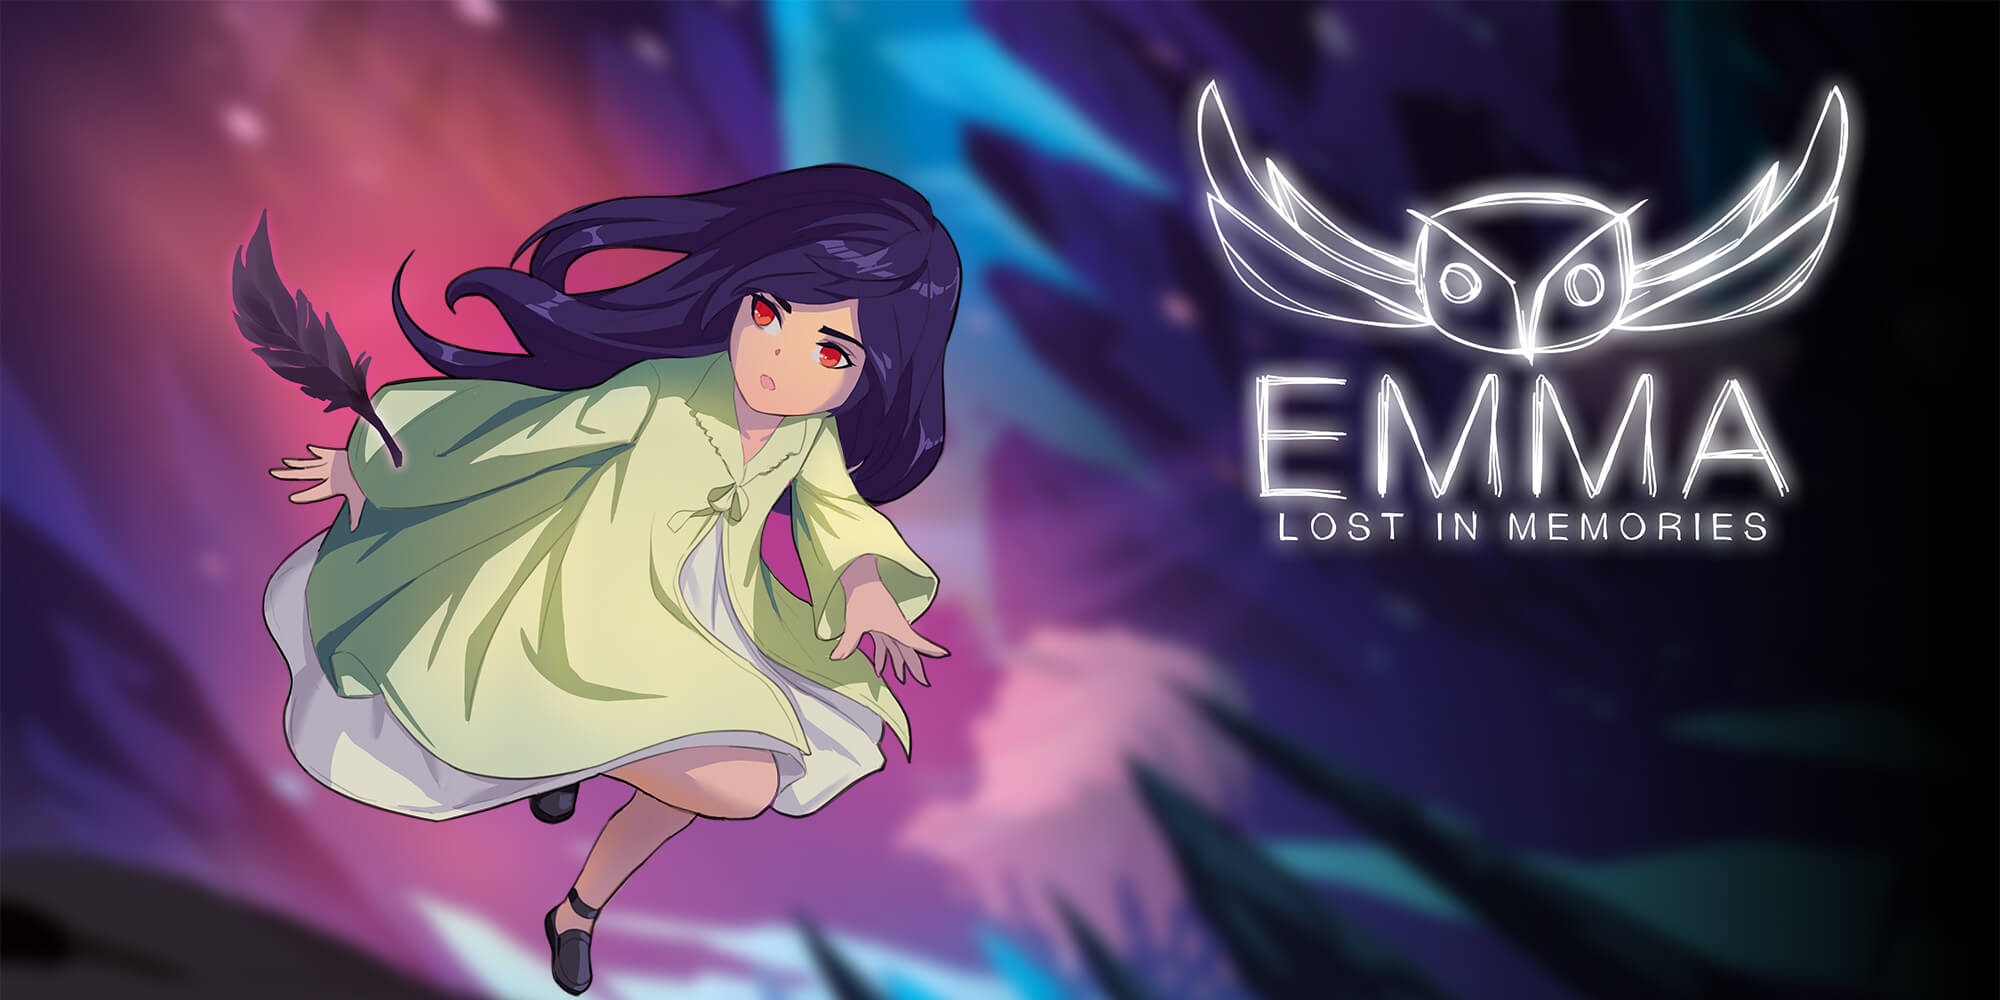 [Review] EMMA: Lost in Memories